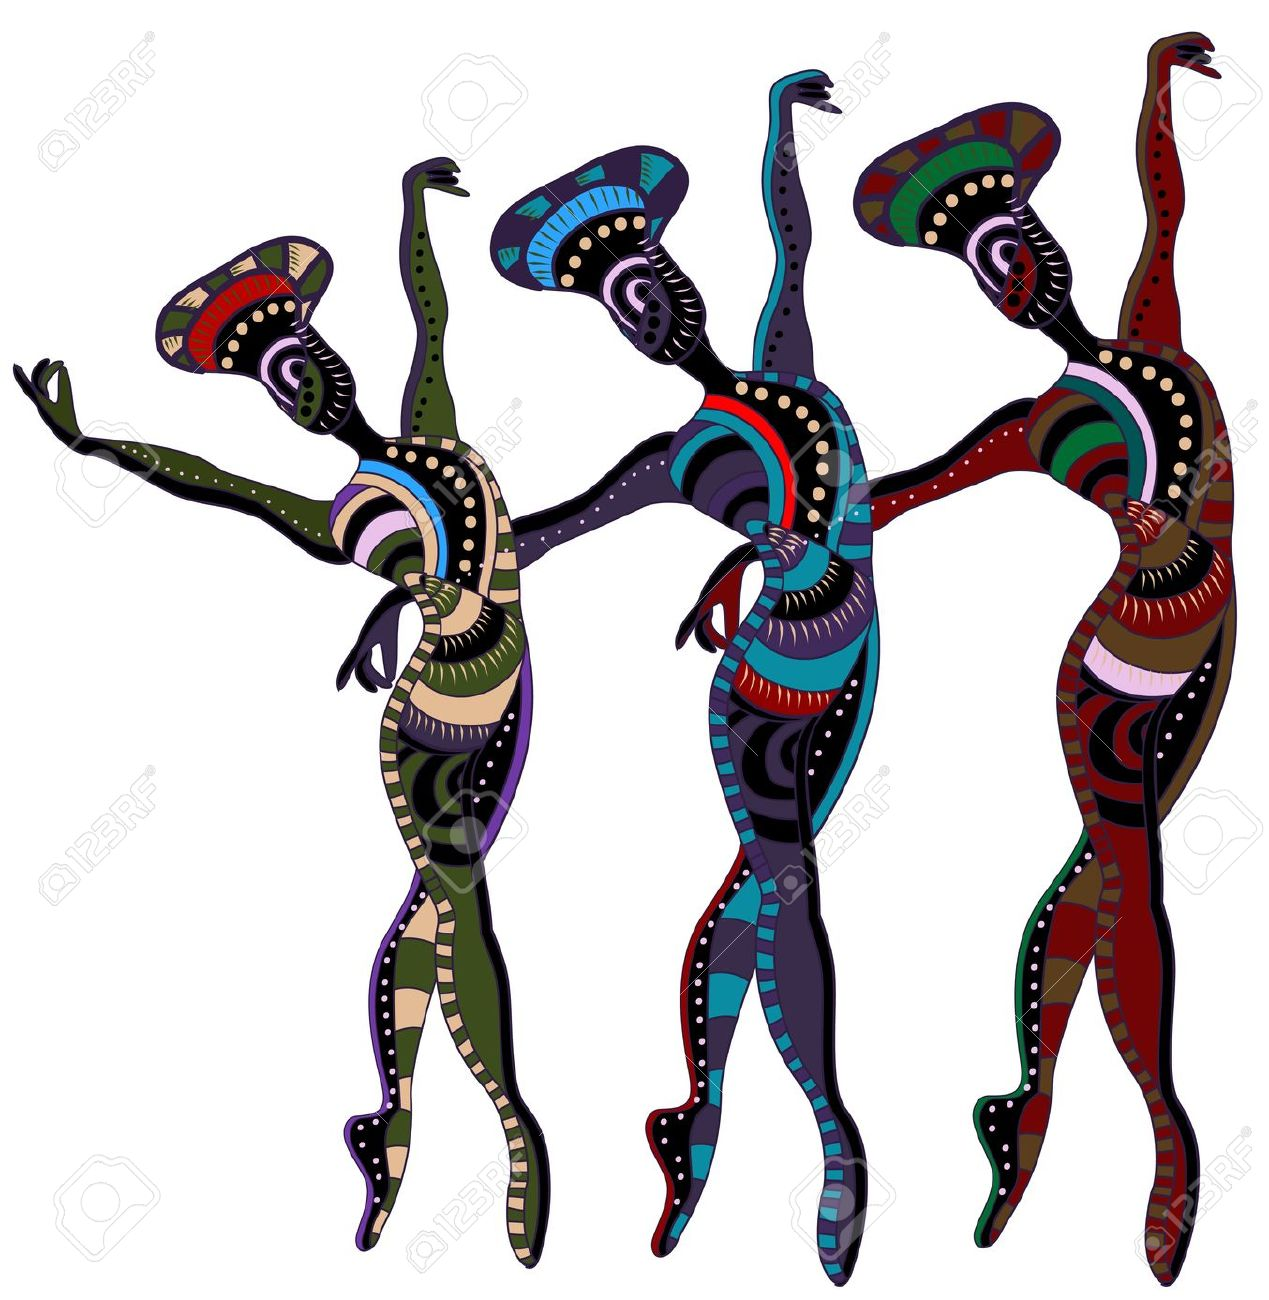 Folk clipart cultural dance Dancing Clipart Dancers Philippines silhouette